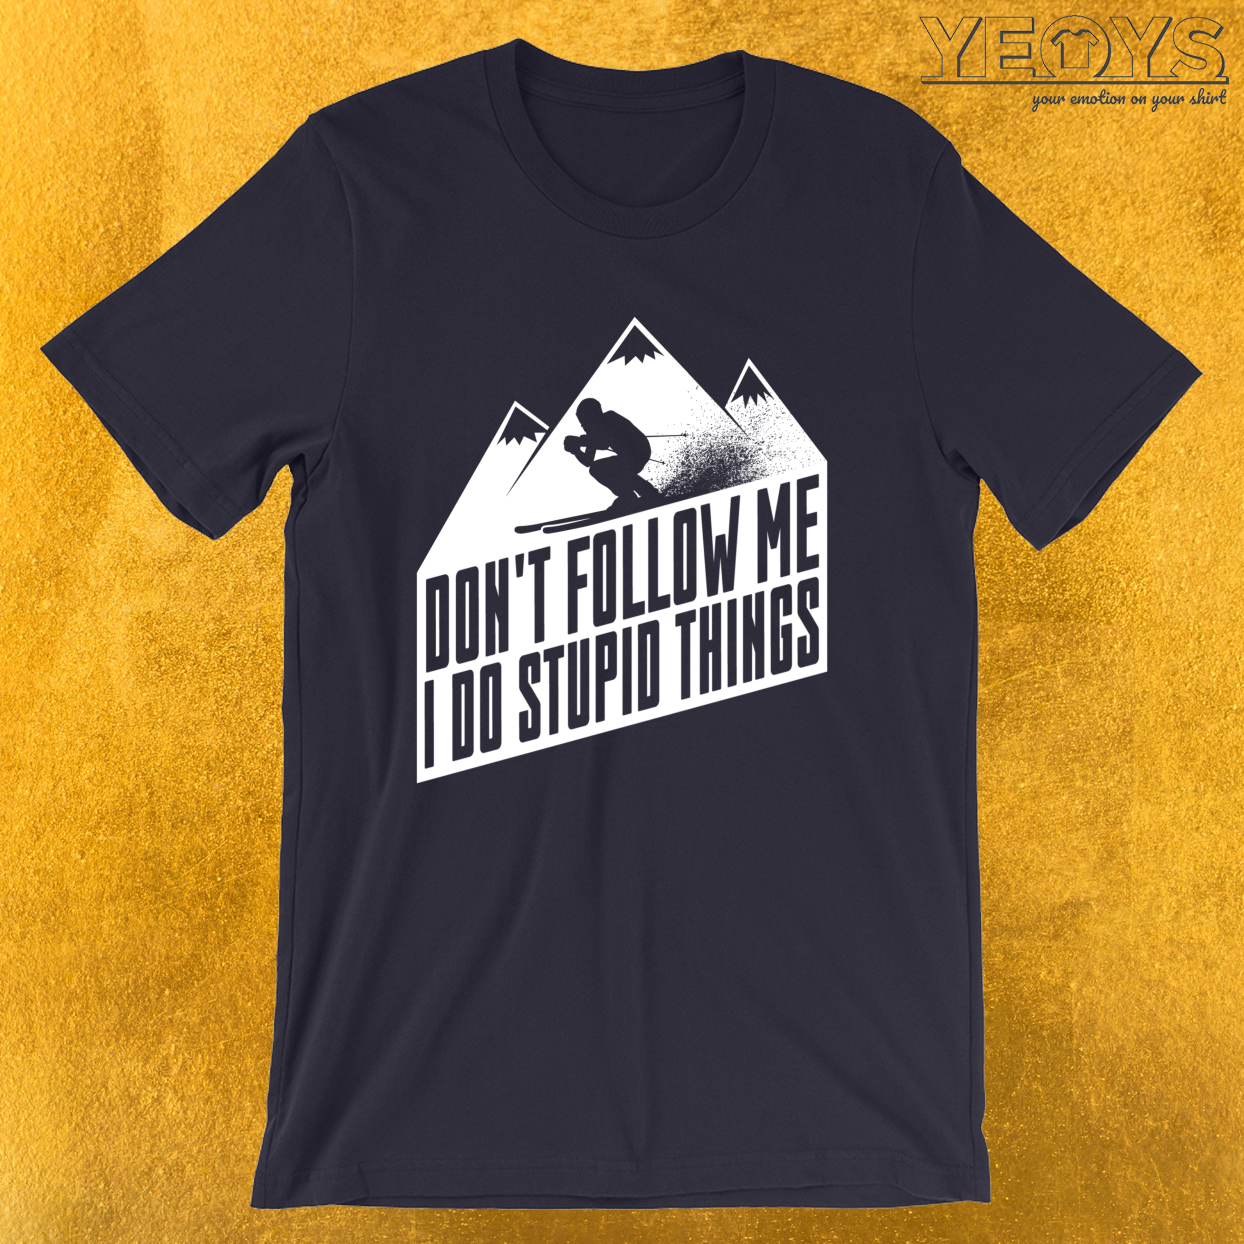 Downhill Skiing – Don't Follow Me I Do Stupid Things Tee